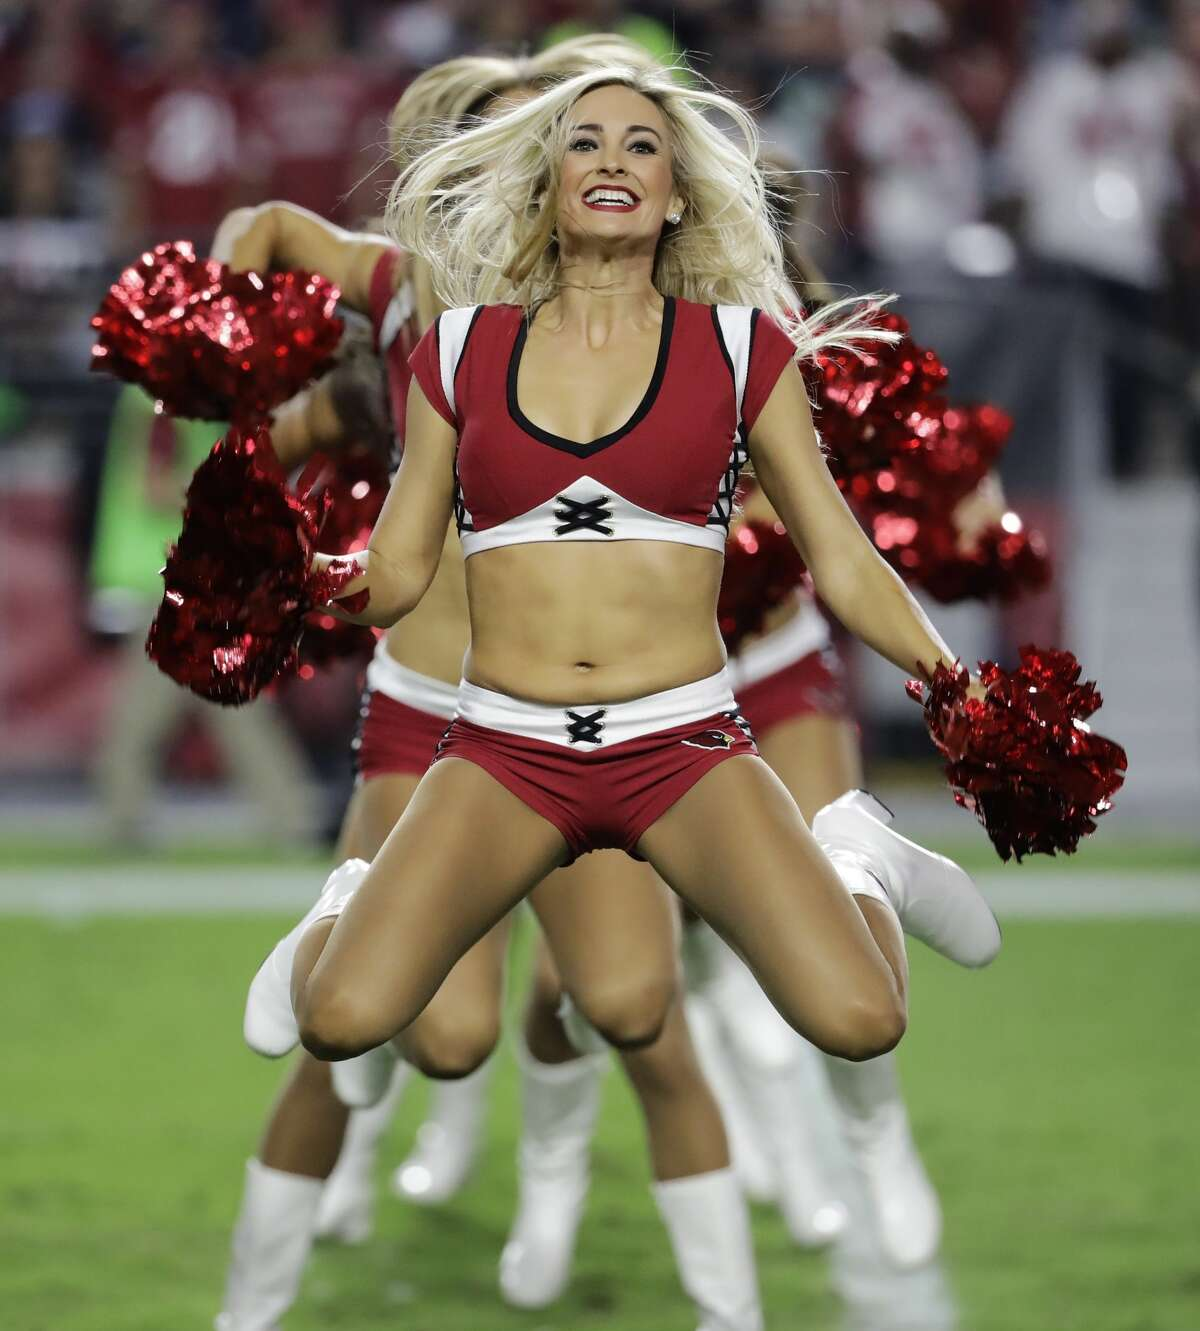 The Arizona Cardinals cheerleaders perform during the second half of a football game against the Seattle Seahawks, Sunday, Oct. 23, 2016, in Glendale, Ariz. (AP Photo/Rick Scuteri)